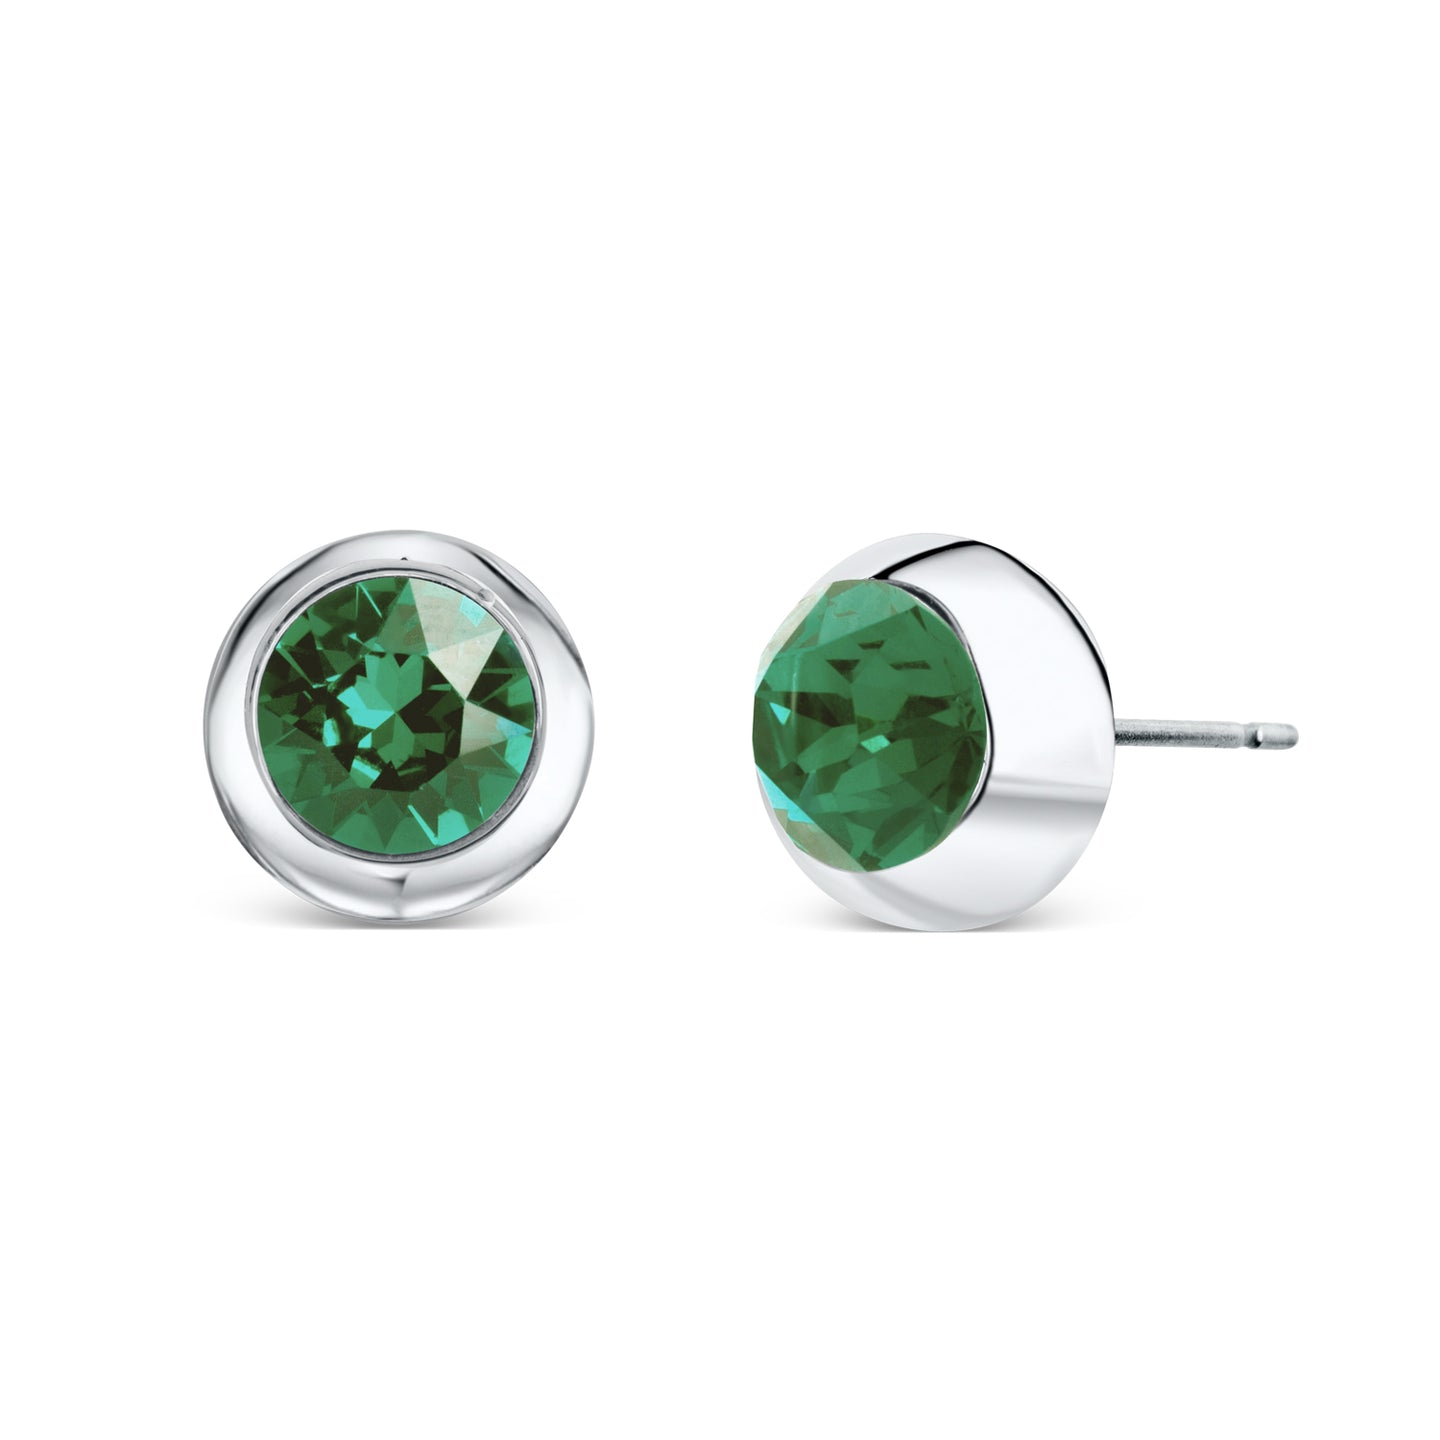 Solitaire Stud Earrings